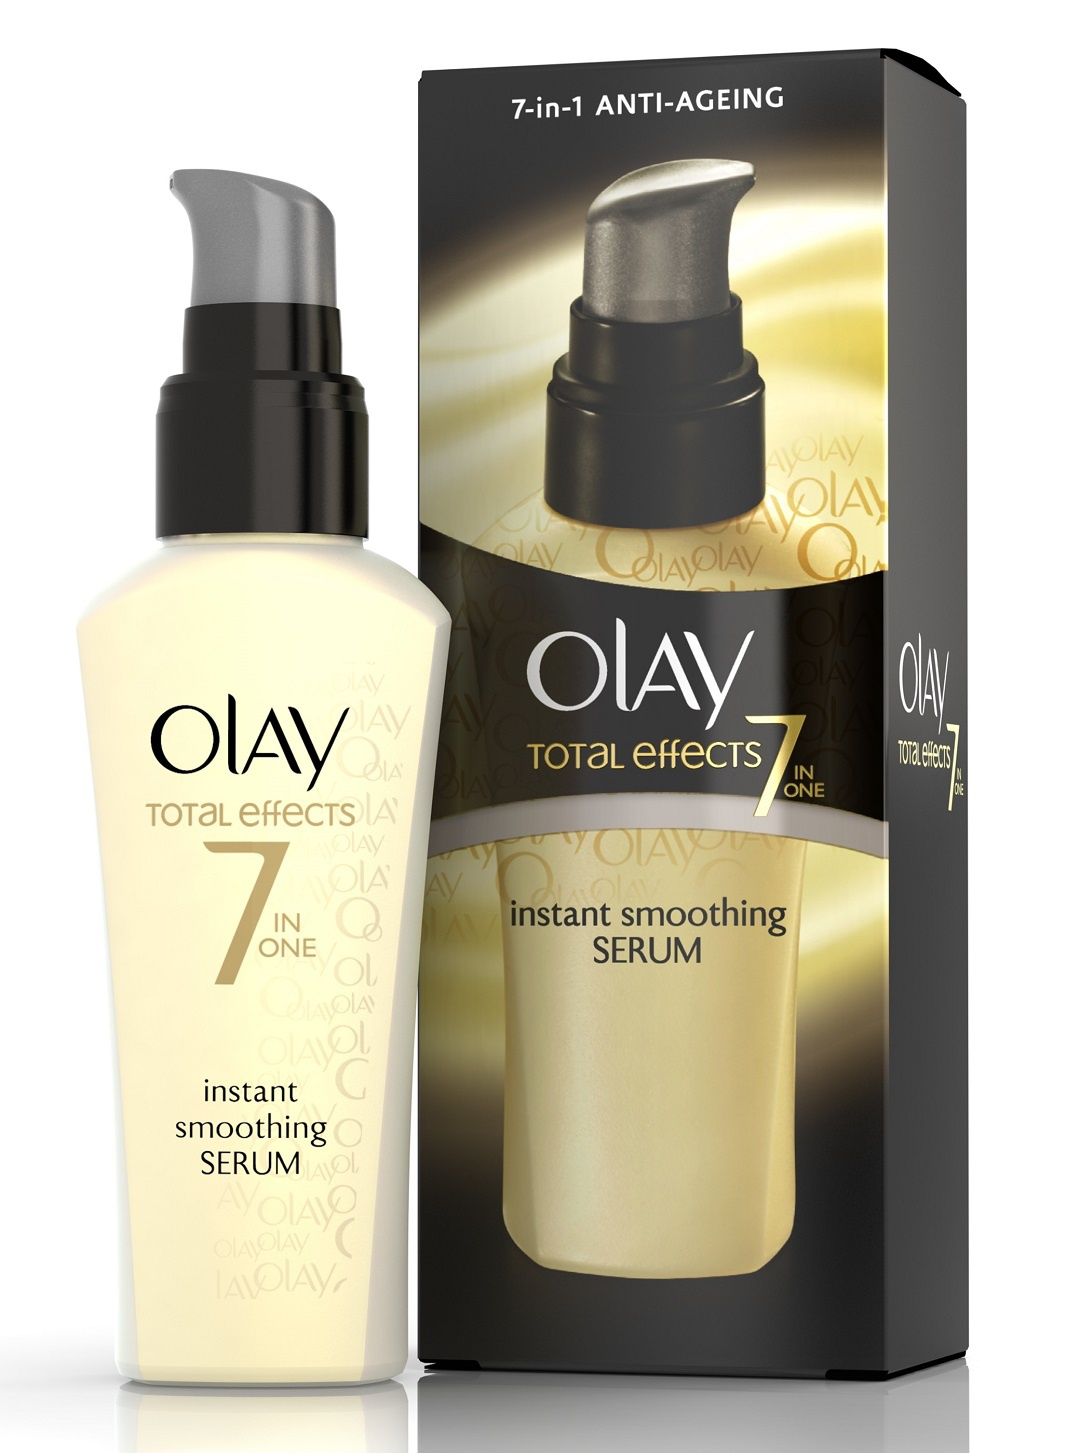 Olay Total Effects 7-In-1 Anti-Ageing Instant Smoothing Serum